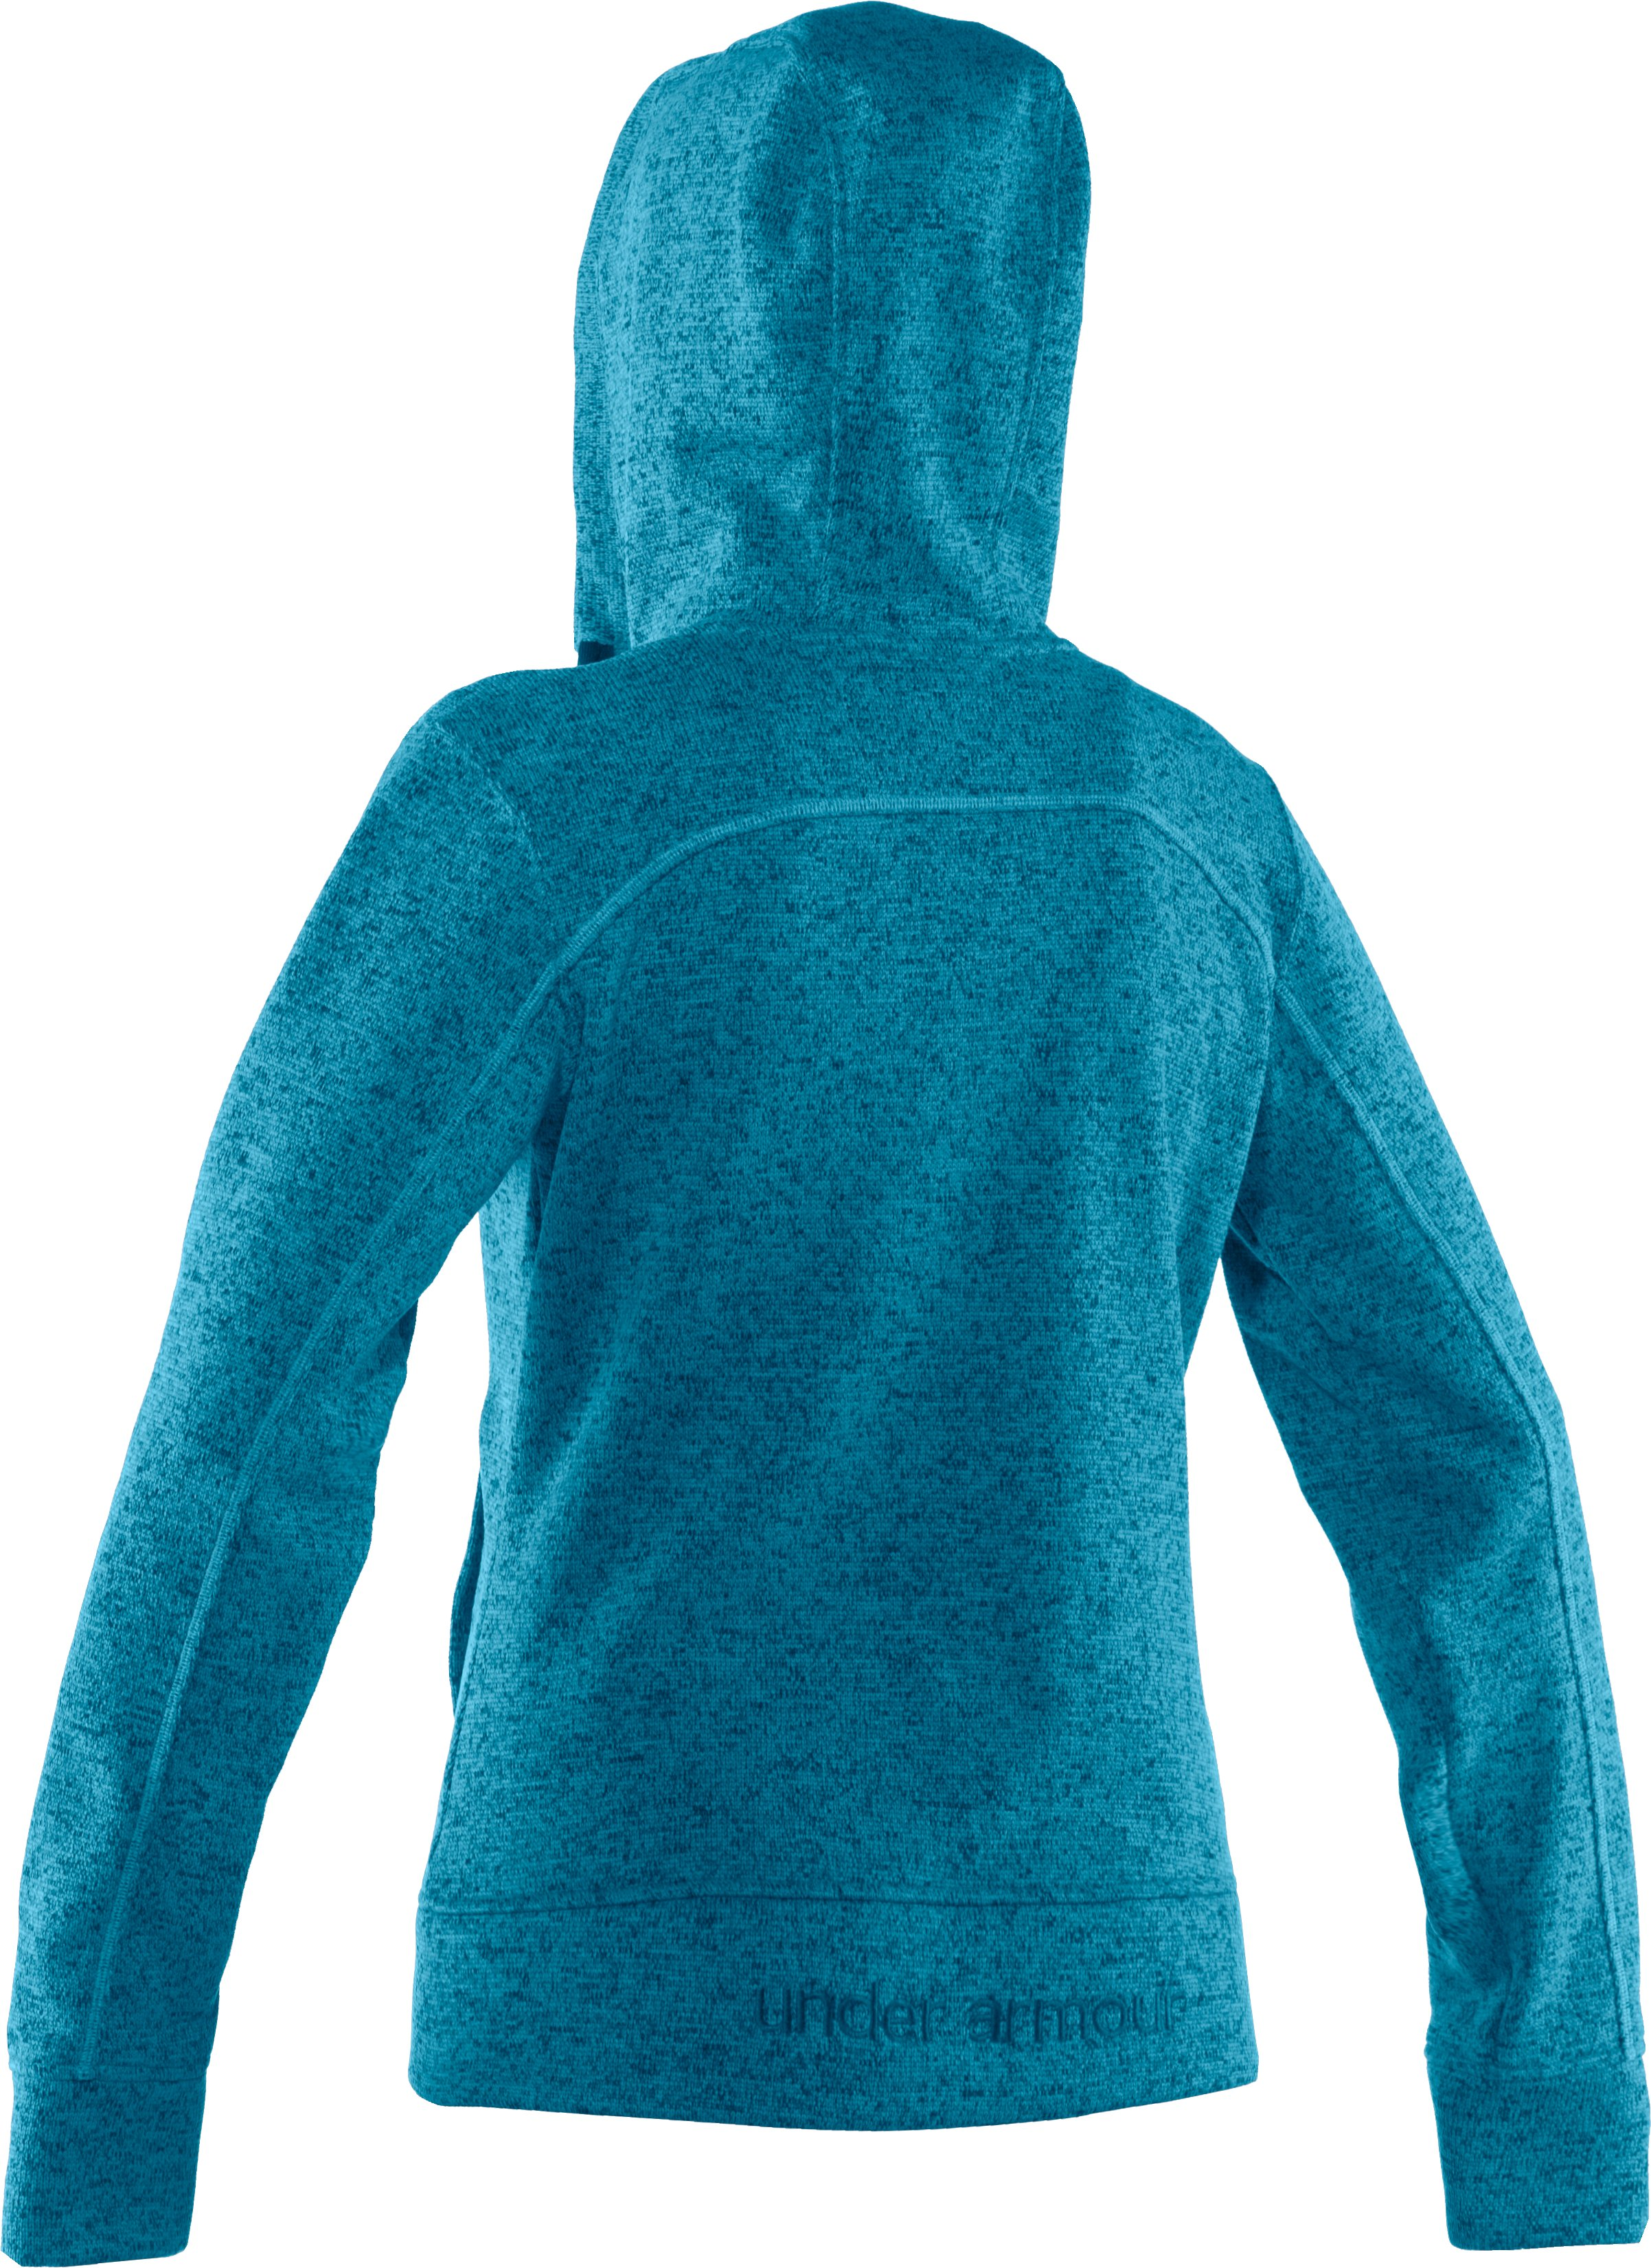 Women's UA Storm Rally Hoodie, Break